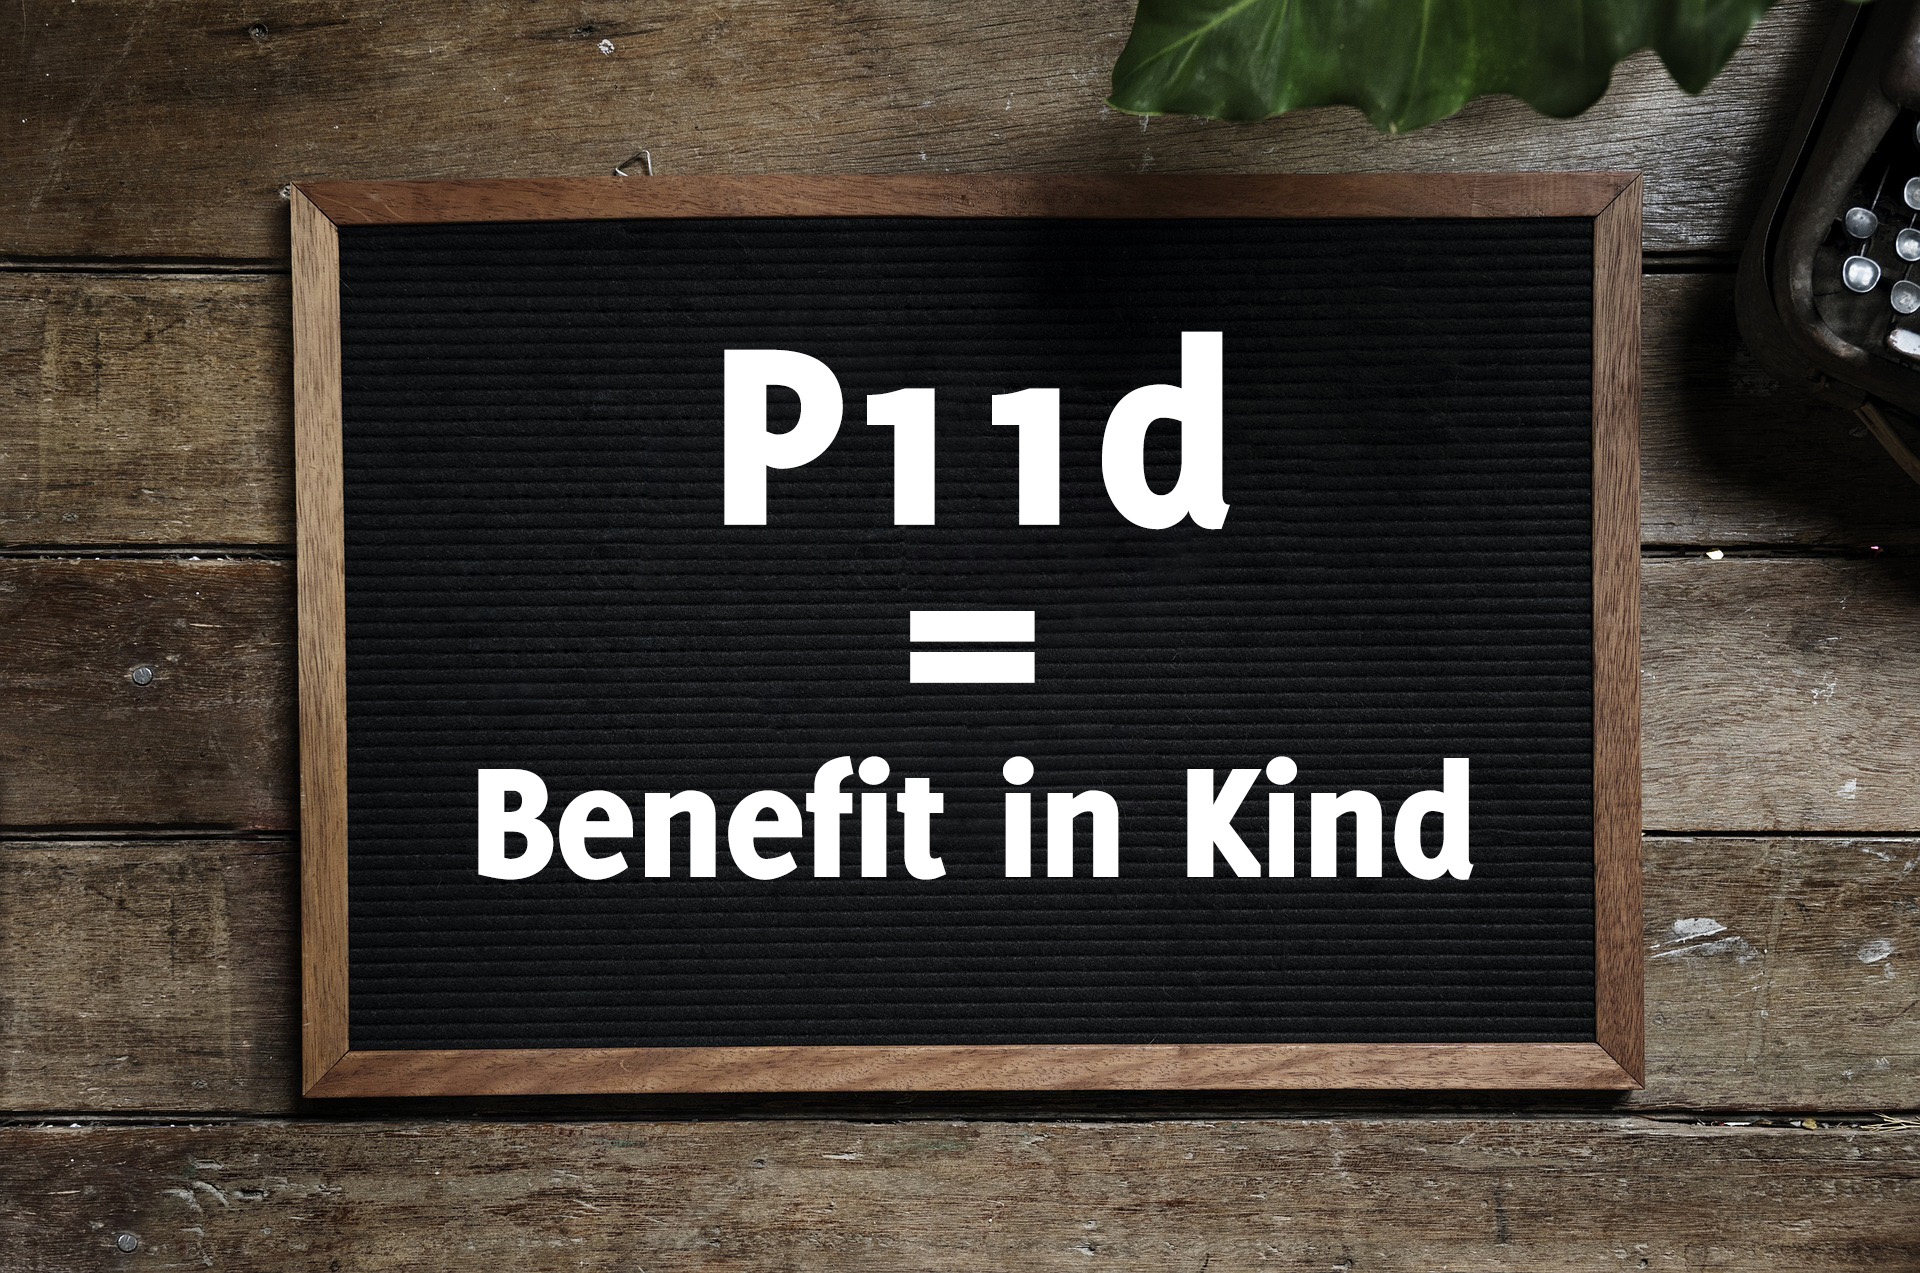 What is a P11d and why do I have to pay it?